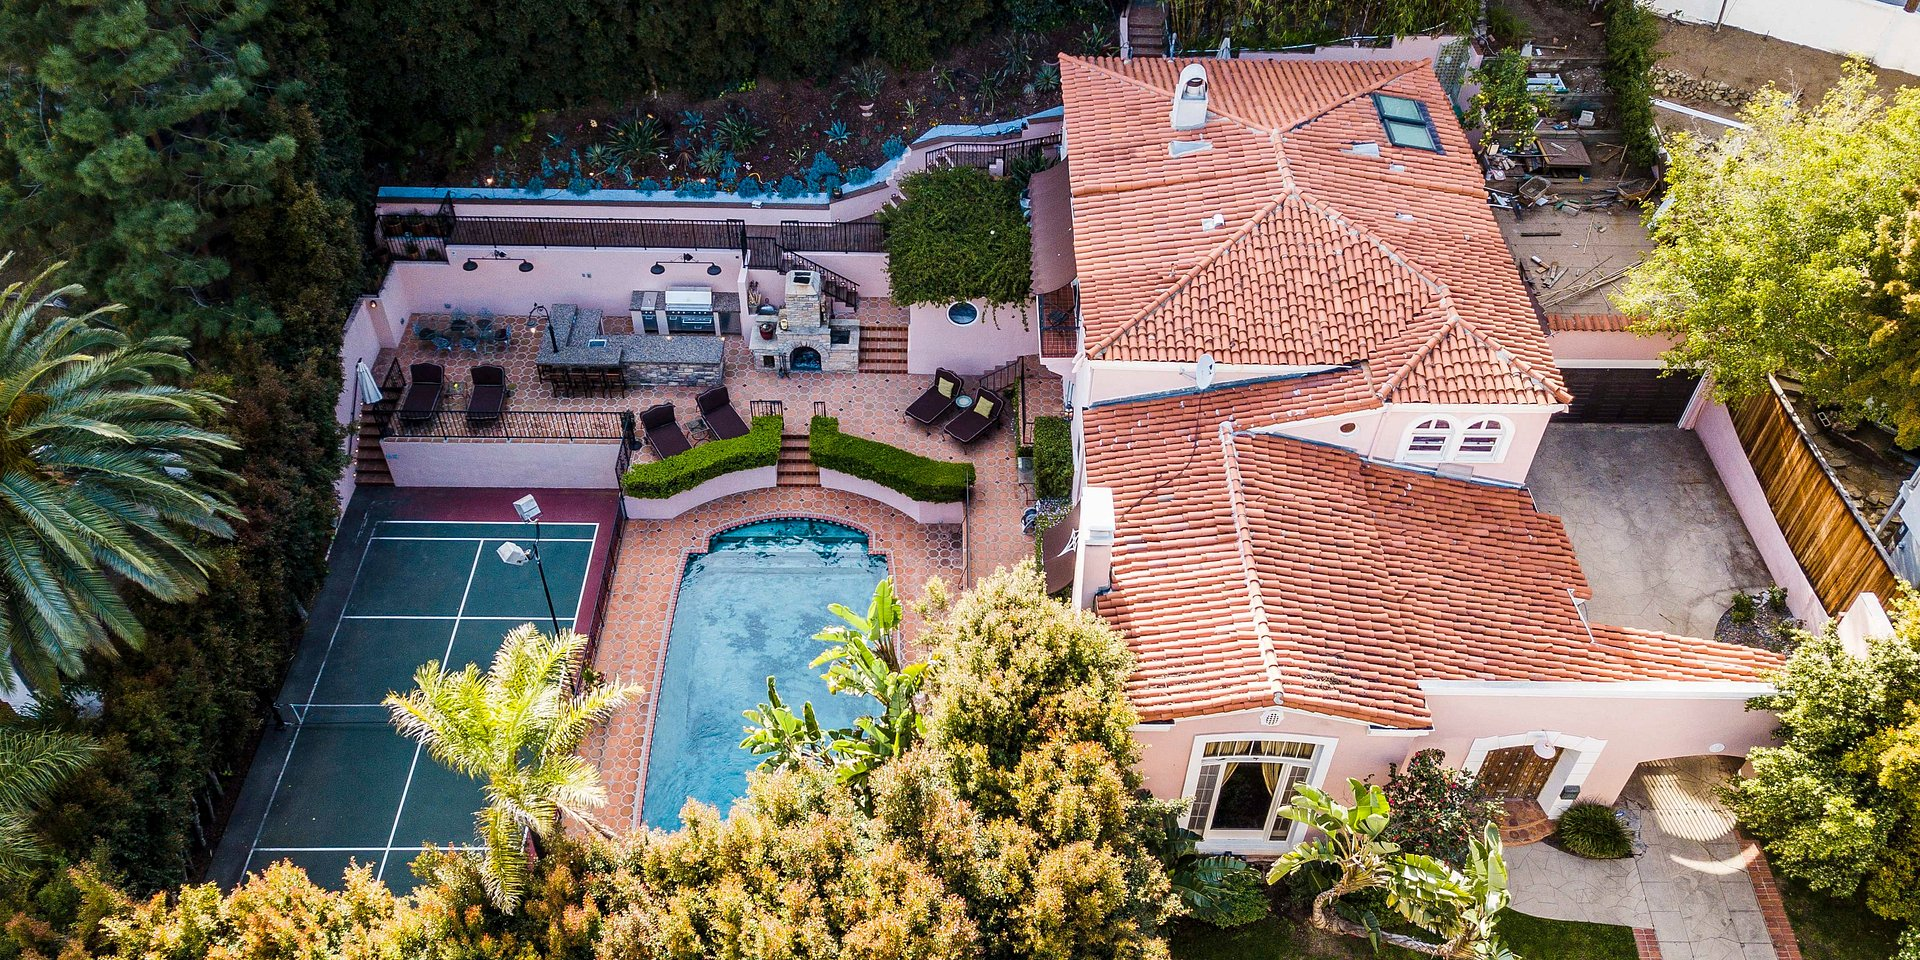 Coldwell Banker Residential Brokerage Lists the Former Los Angeles Home of an American Actor for $2.85 Million